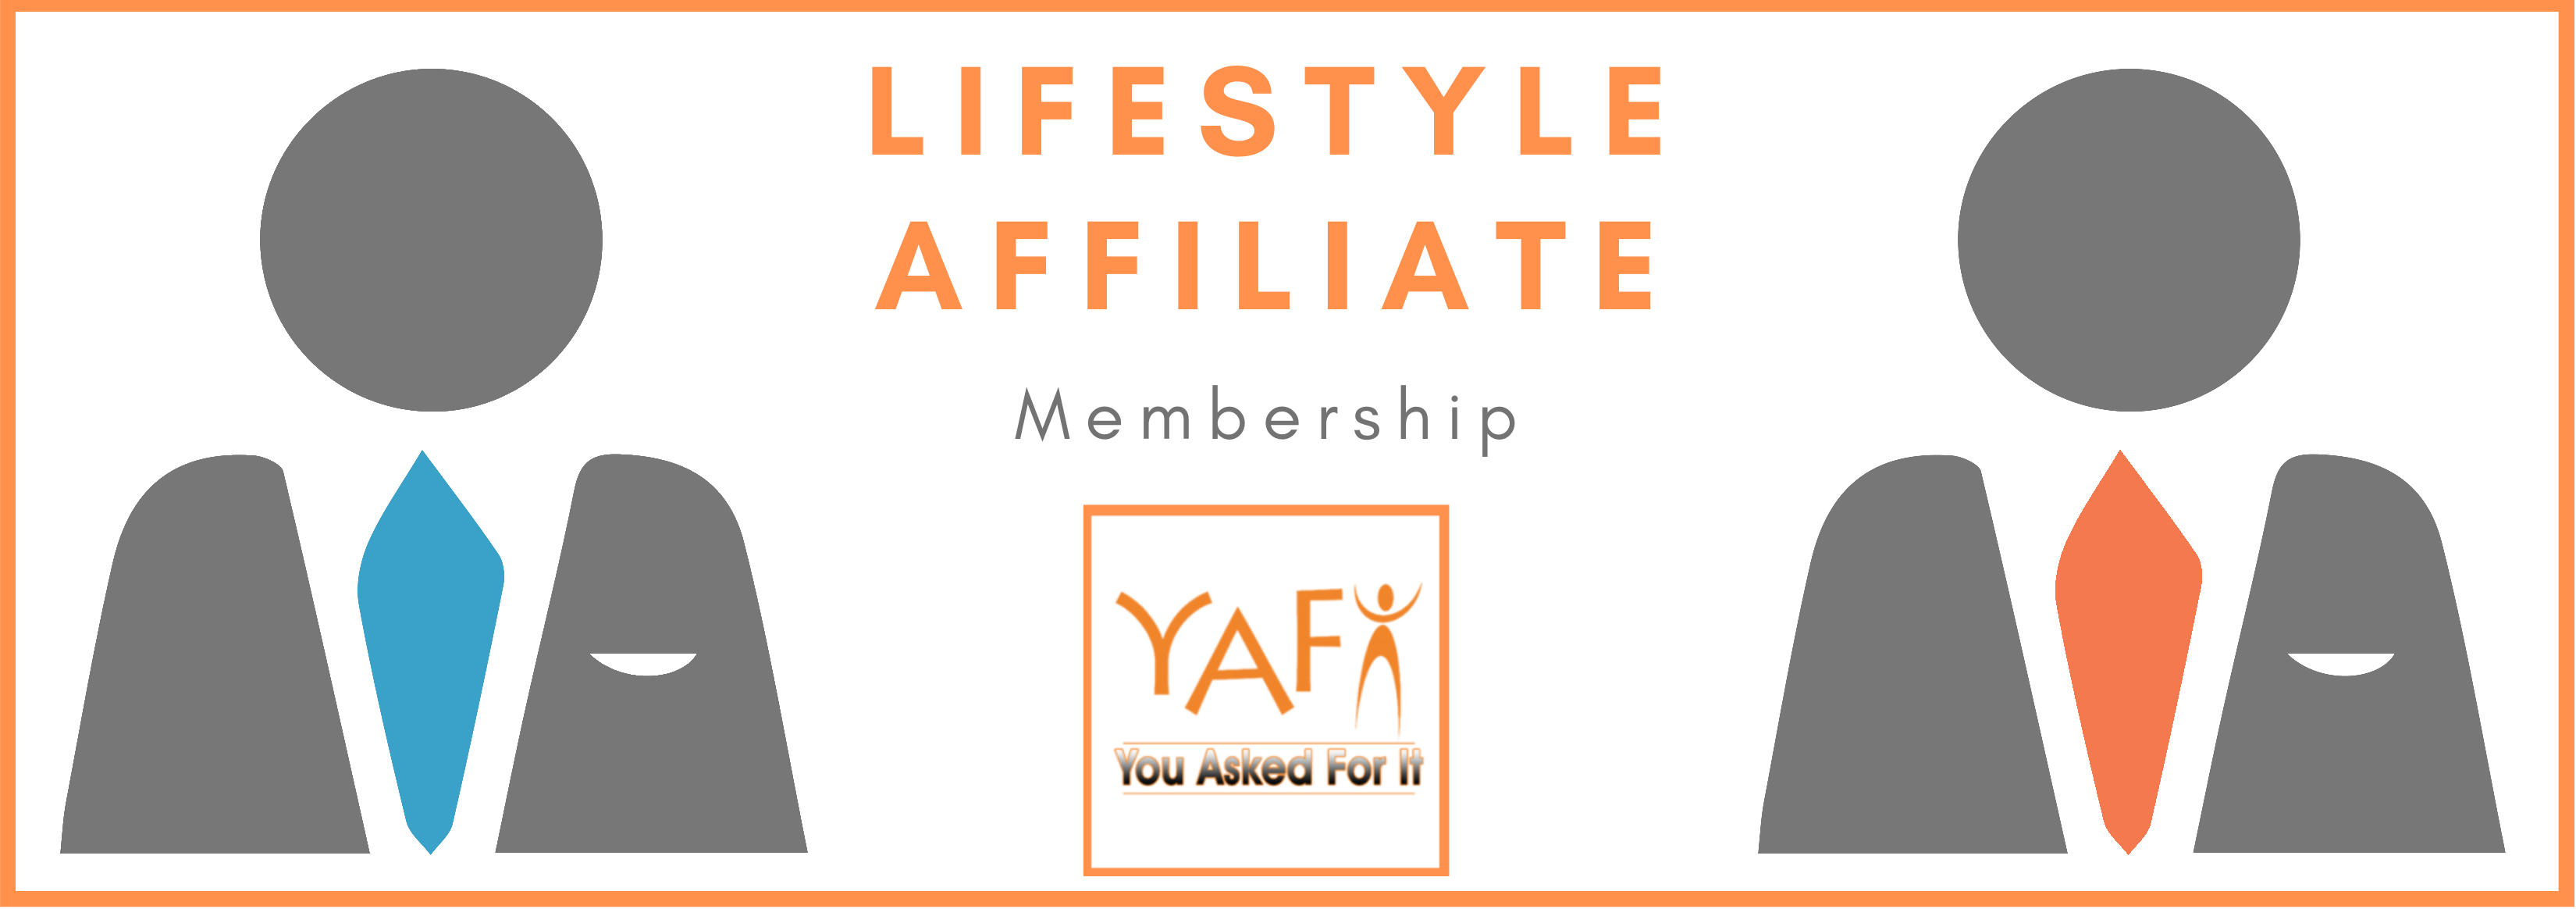 YAFI - You Asked For It! brand image